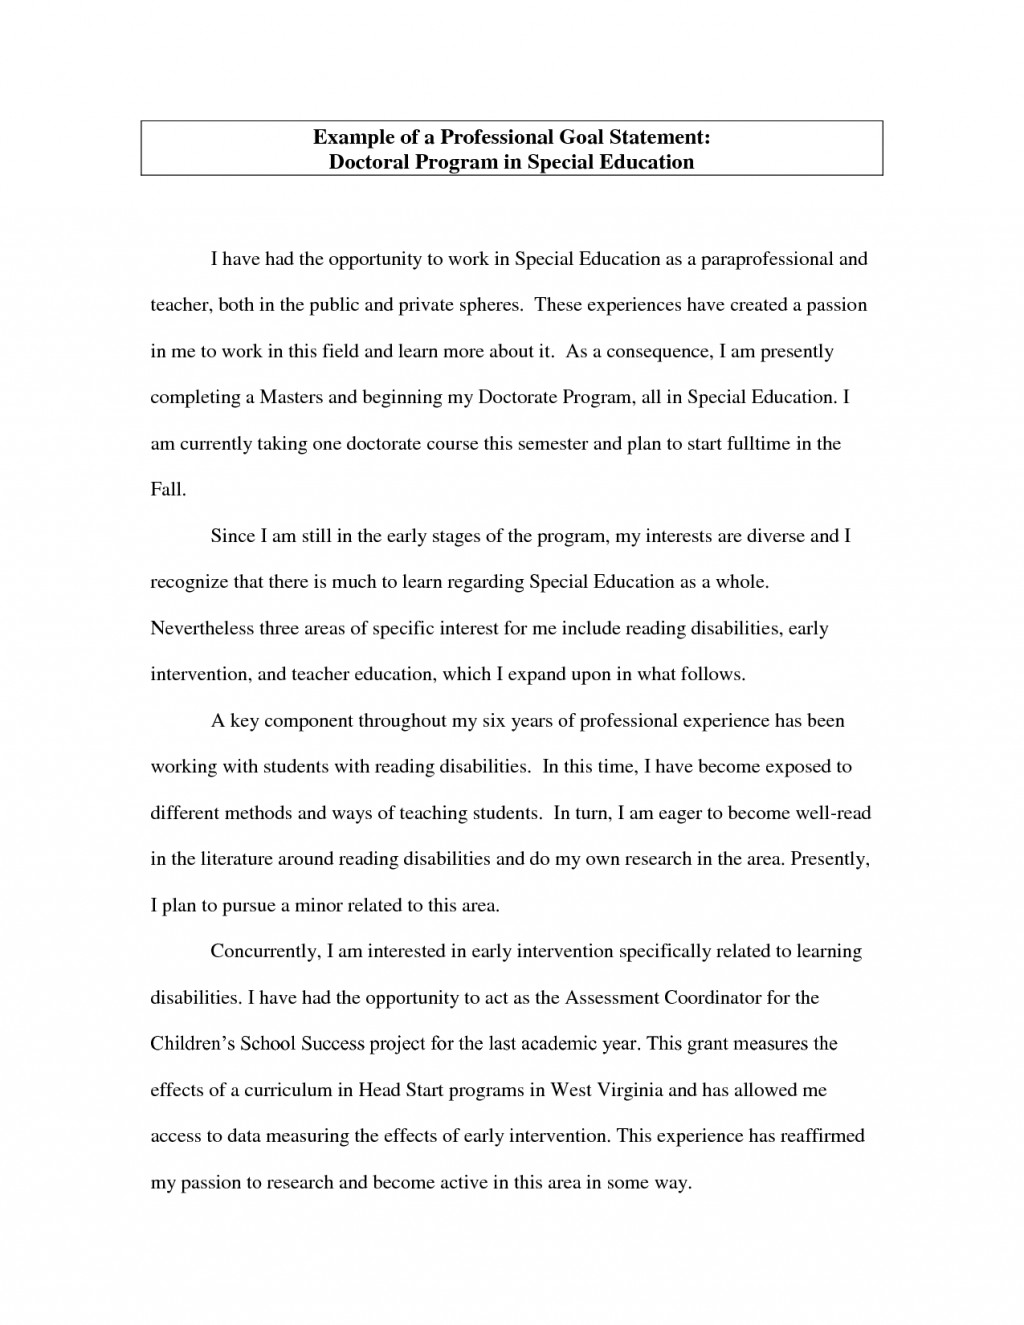 essay example career goal sample personification goals l    career essays goal statement zdxttkpg imposing essay examples  nursing chevening plan example goals pdf large